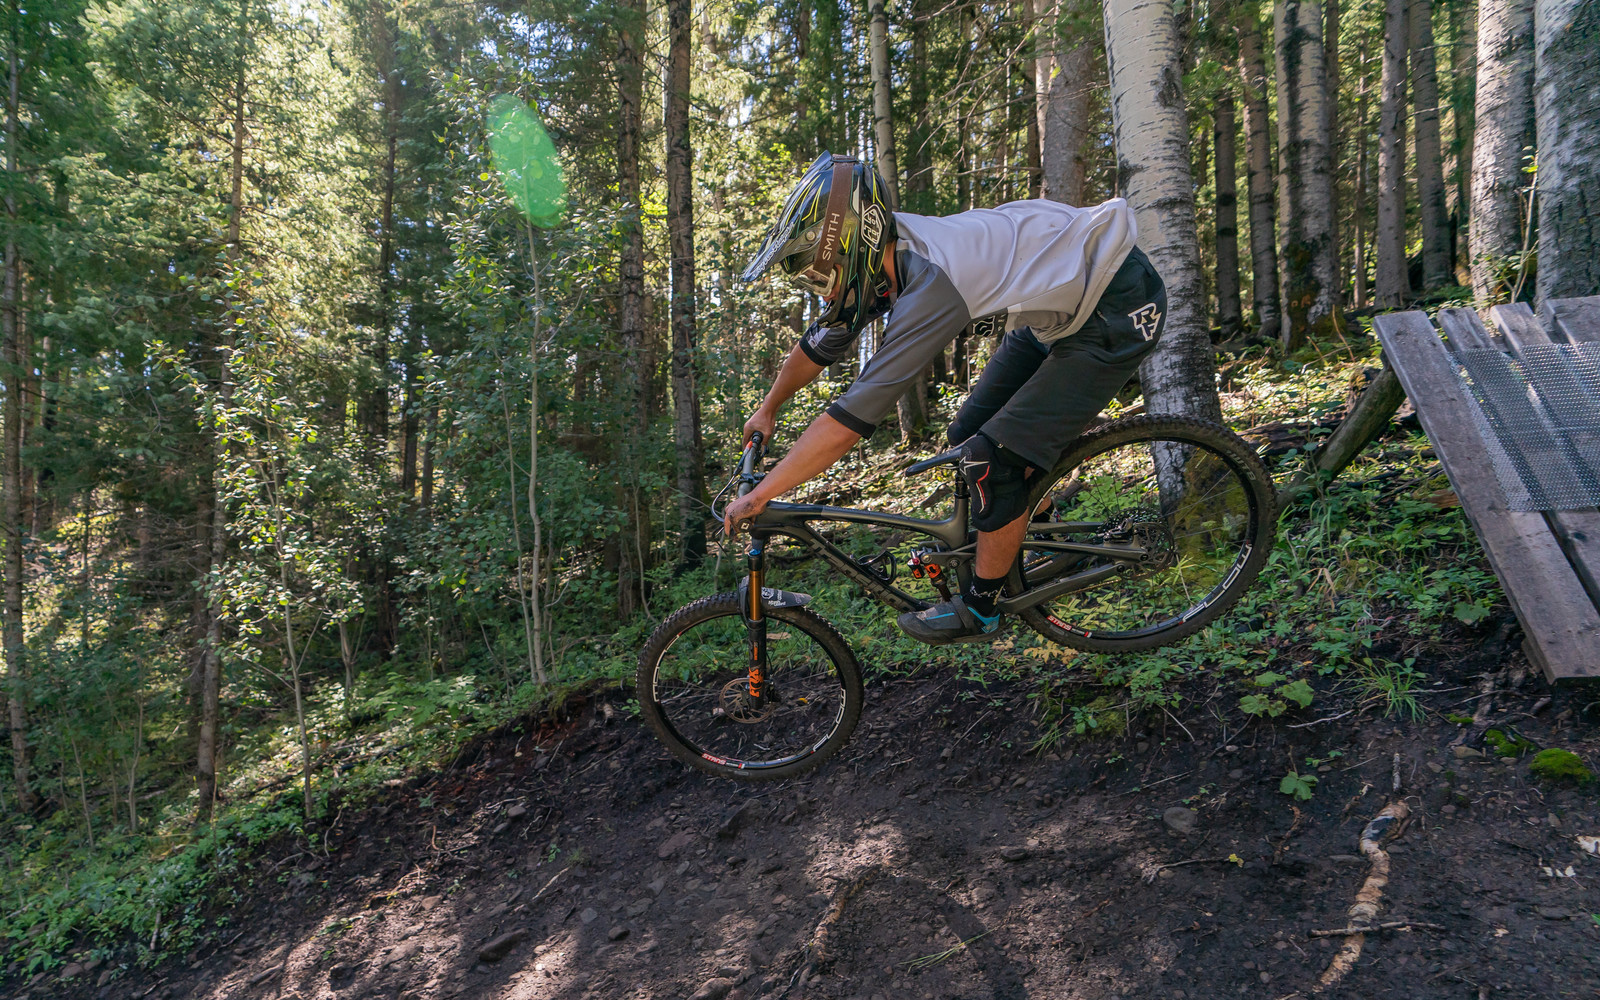 The Trail Party Series Introduces Gravity Stage Racing